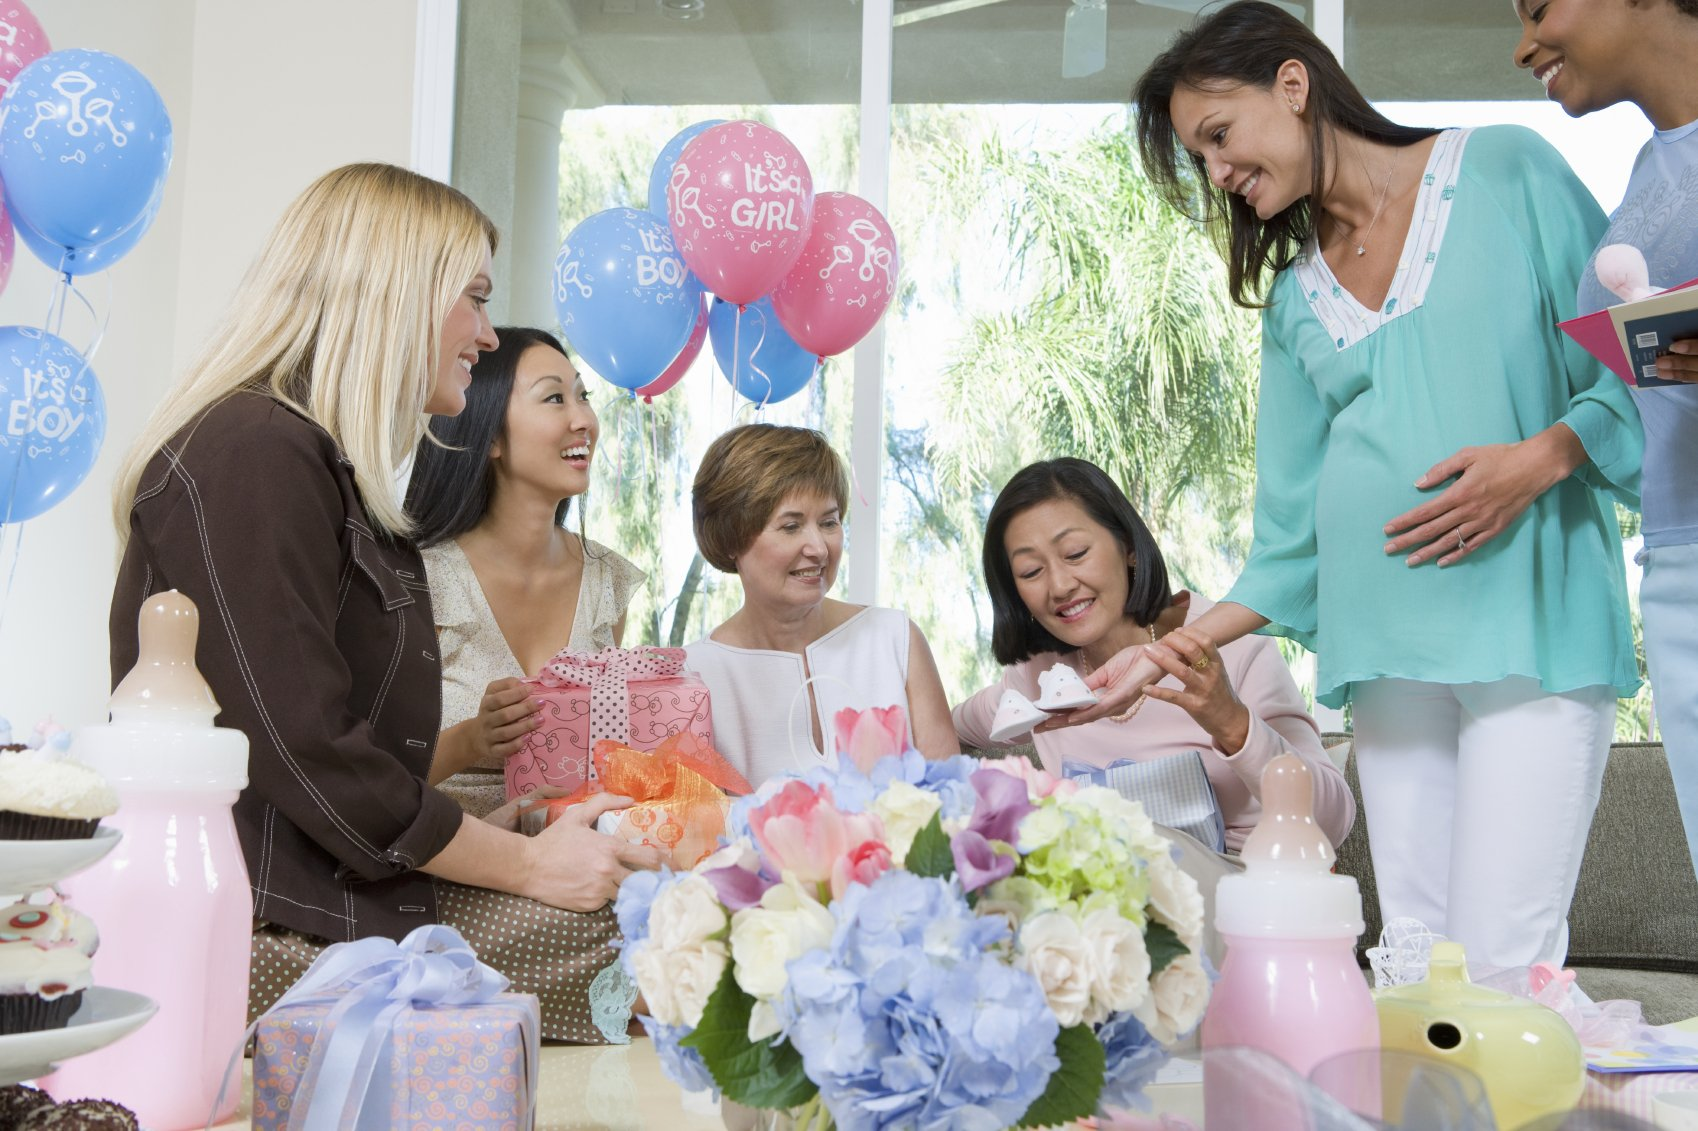 games take a look at these 11 fun baby shower games